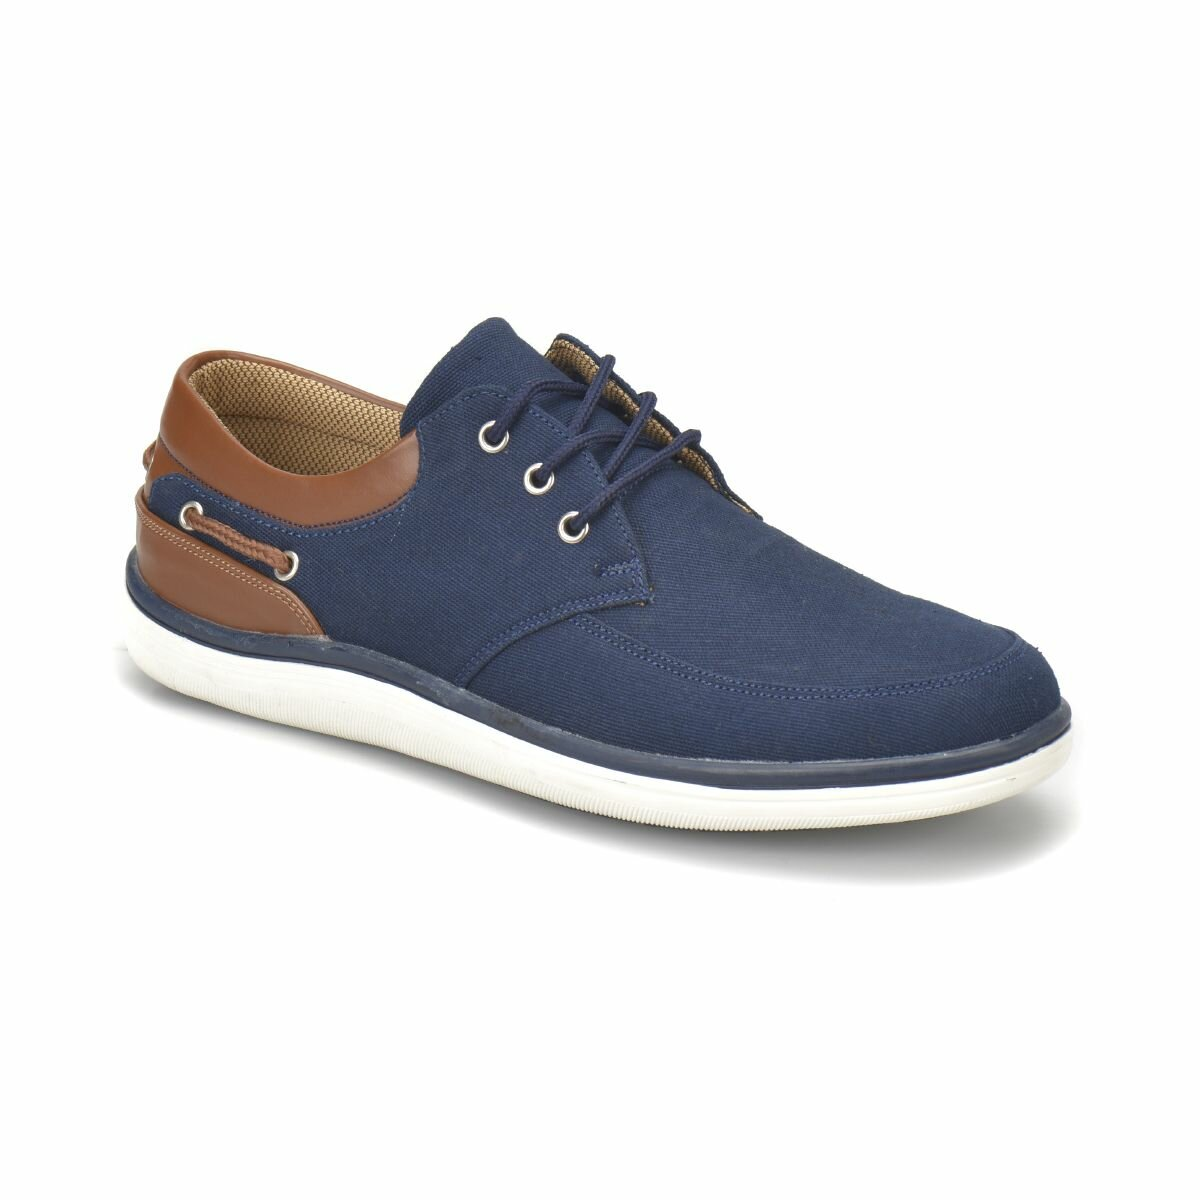 FLO LG-02 Navy Blue Men 'S Shoes Oxide